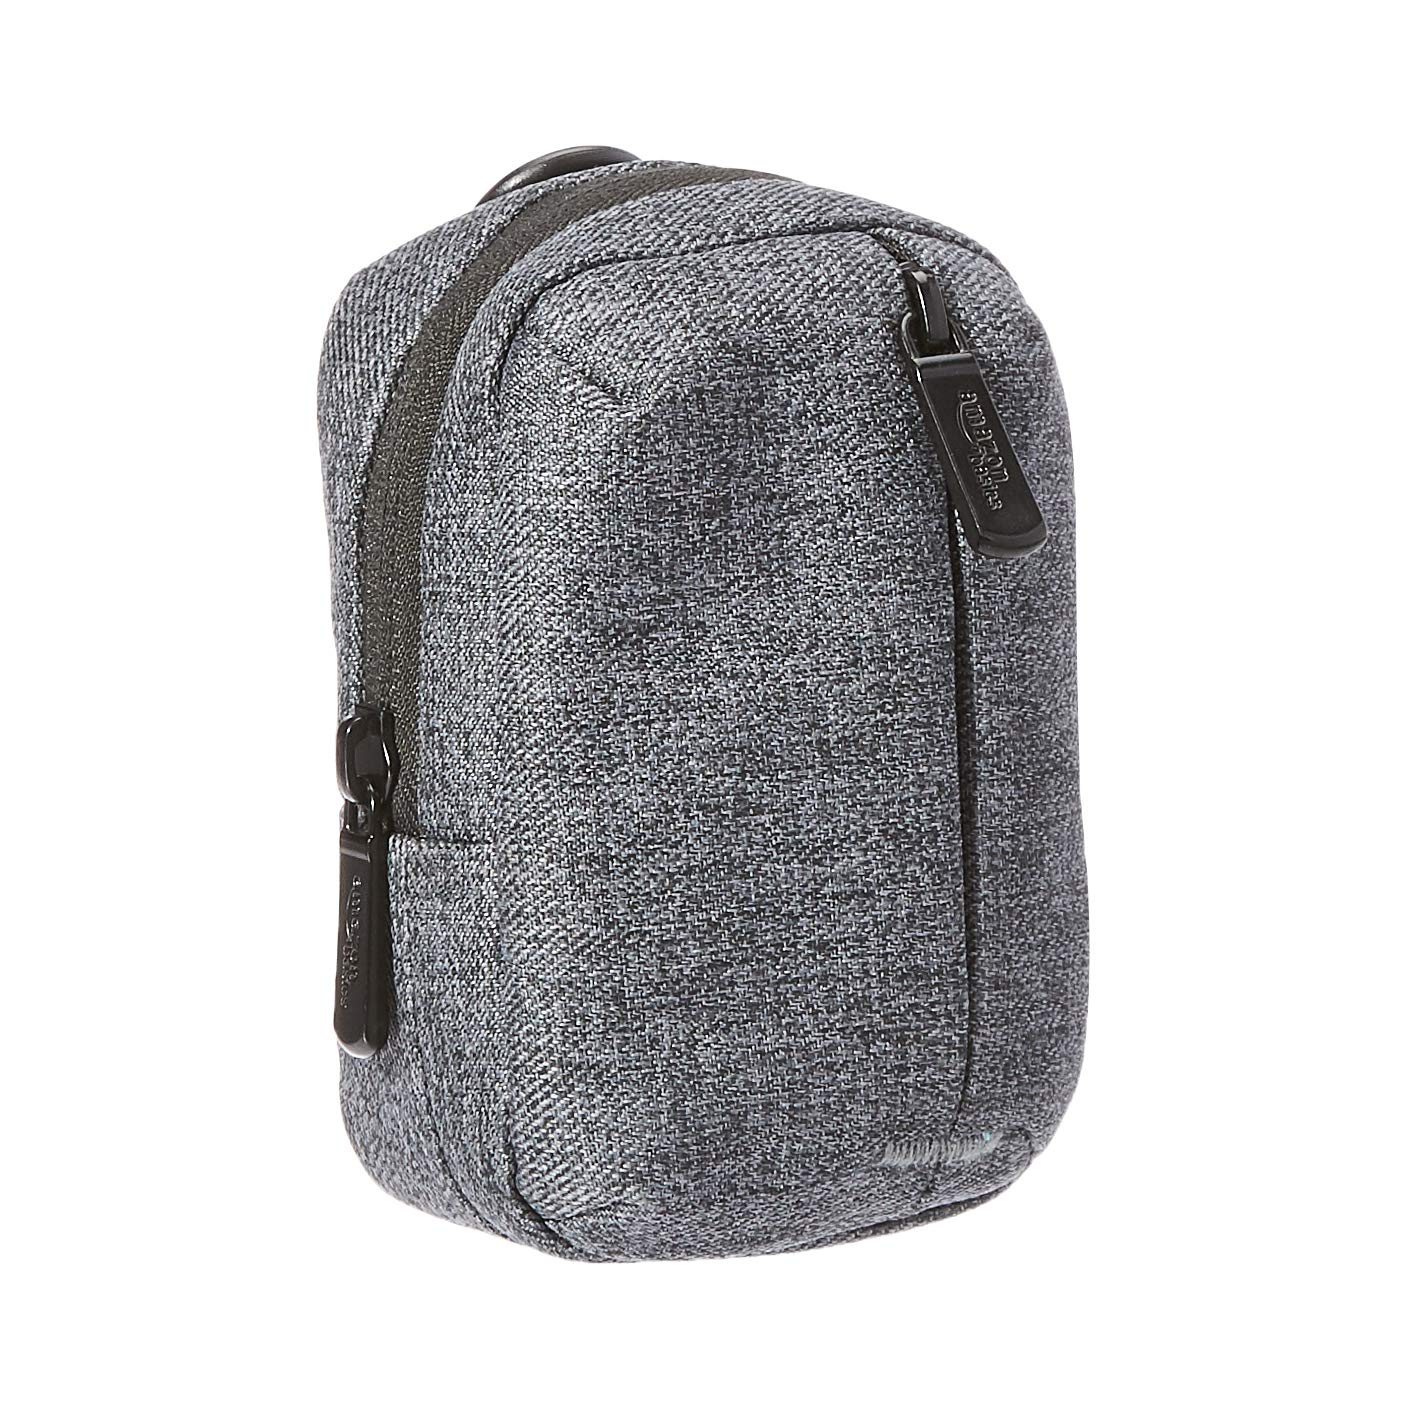 Amazon Basics Camera Pouch with Front Zippered Pocket (Water-Resistant Polyester) - Ash Gray